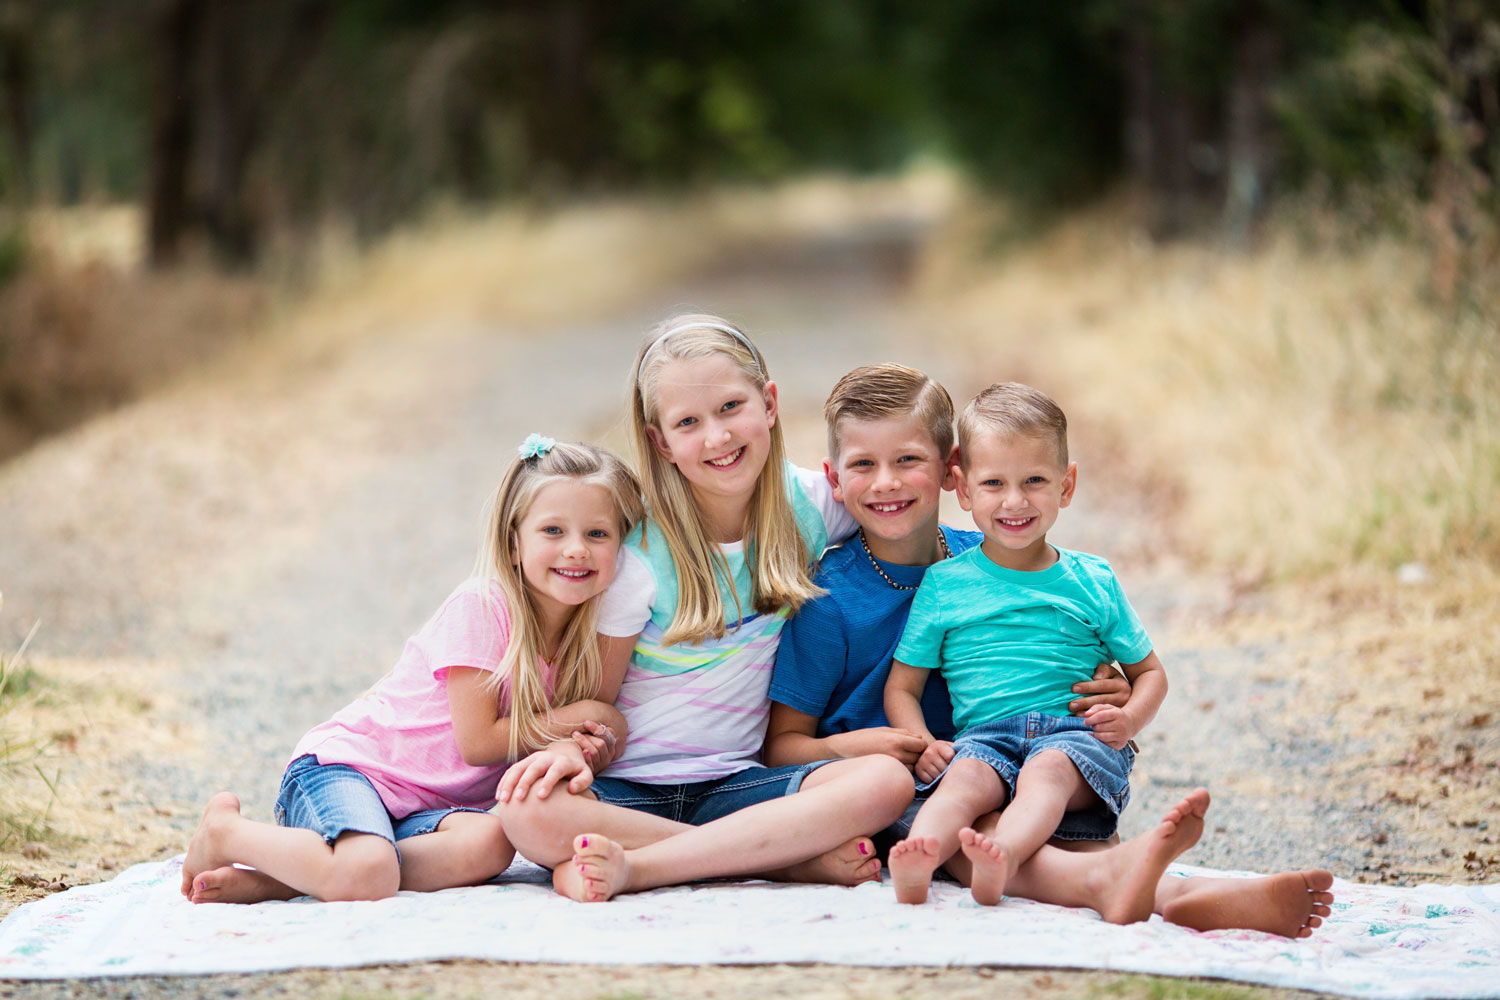 Siblings, Roseville California Family Photographer, Amy Wright Photography